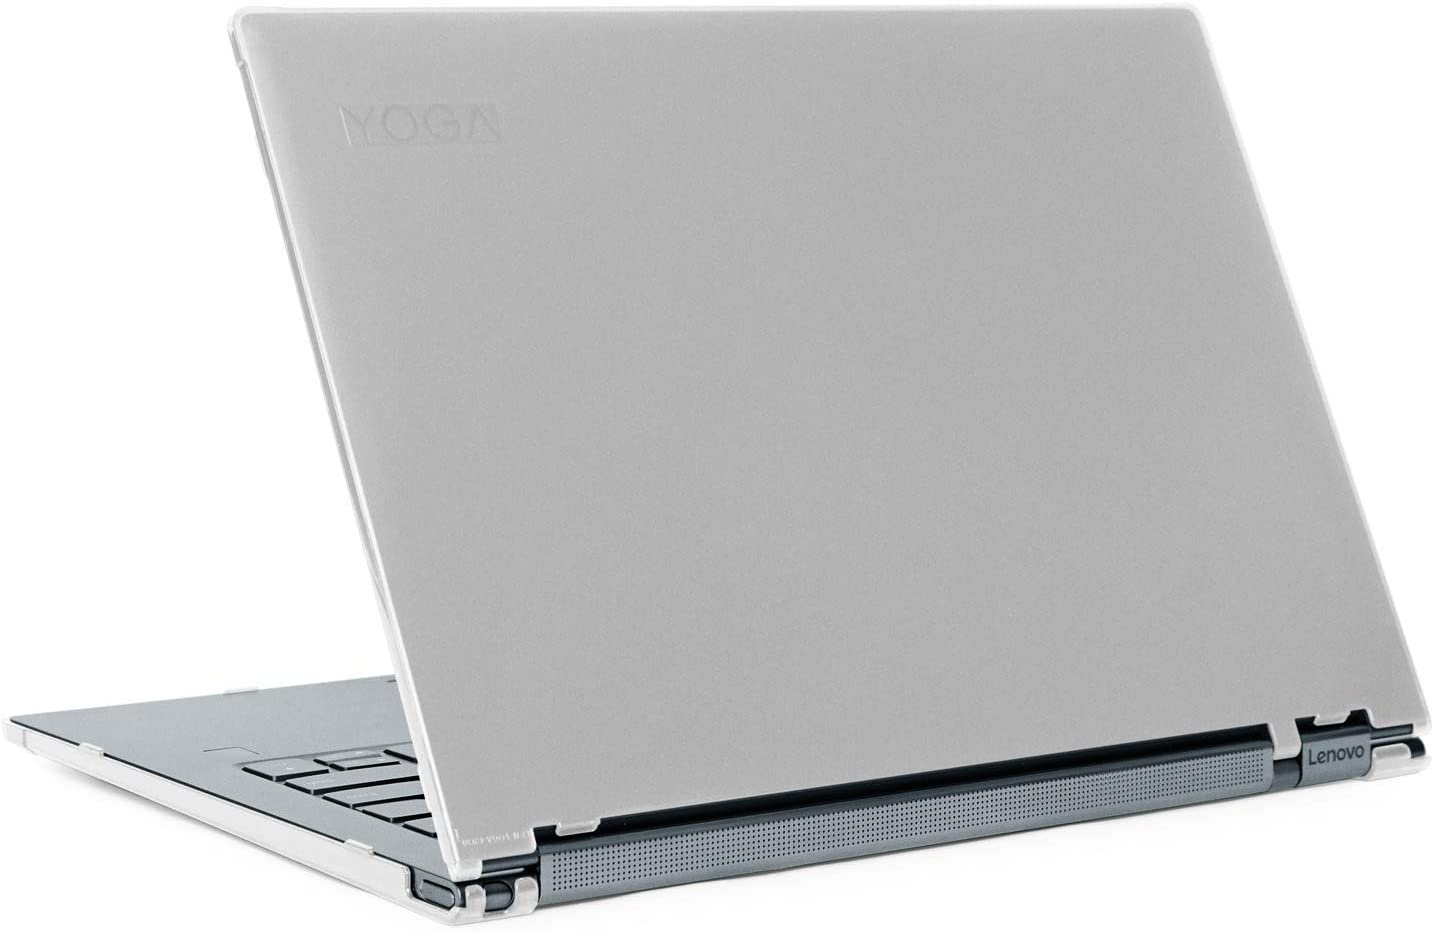 "mCover Hard Shell Case for 13.9"" Lenovo Yoga C930 Series (NOT Fitting Older Yoga 900/910 / 920) multimode Laptop Computer (Yoga-C930 Clear)"